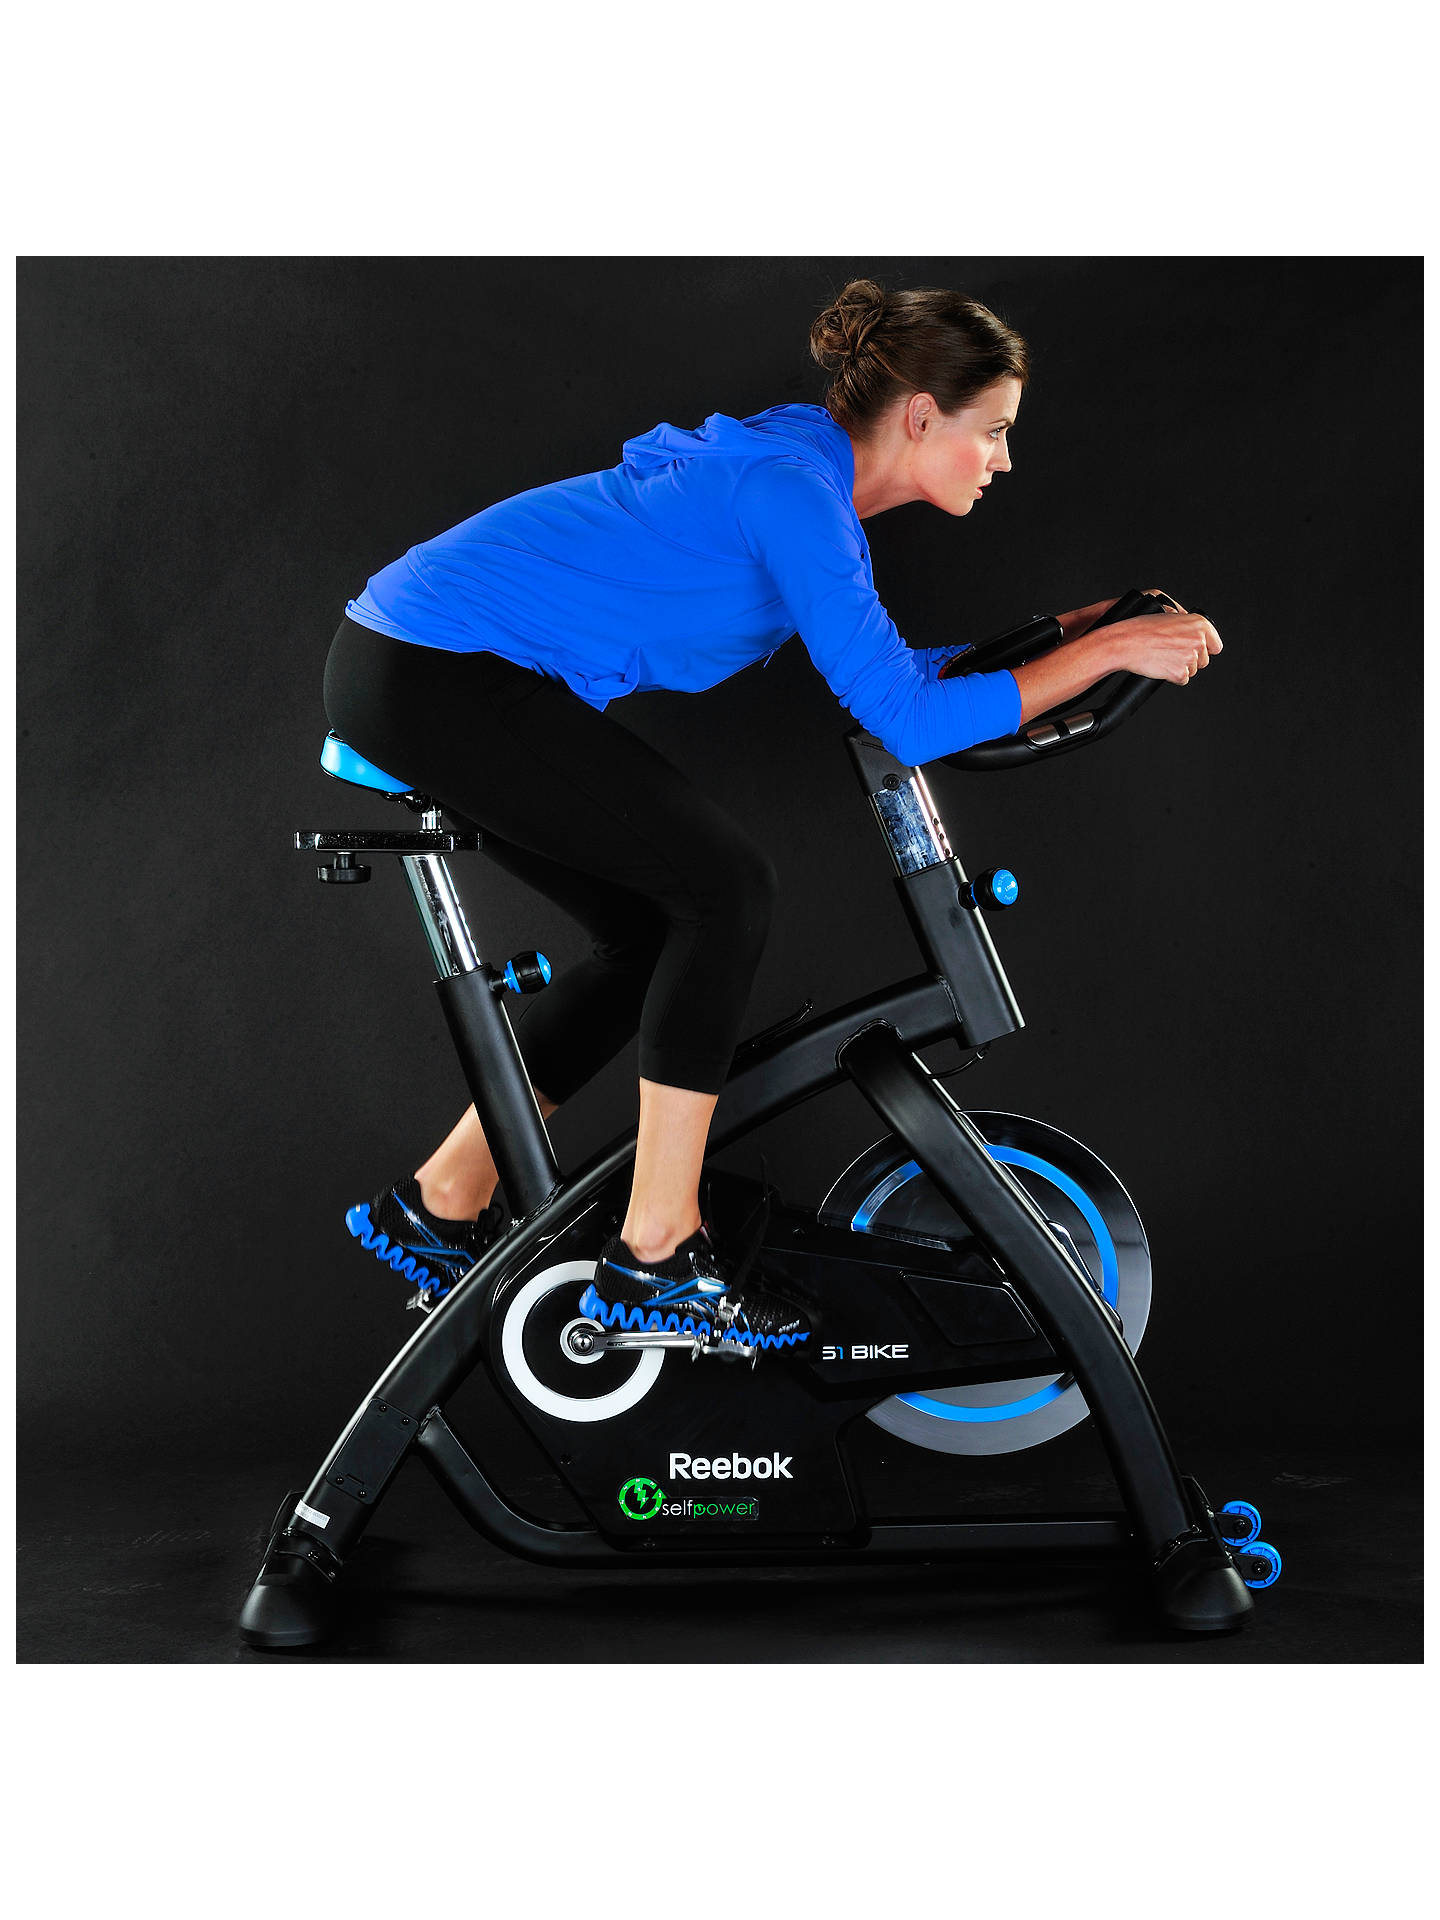 a218c0dd1a Reebok S1 Indoor Exercise Bike